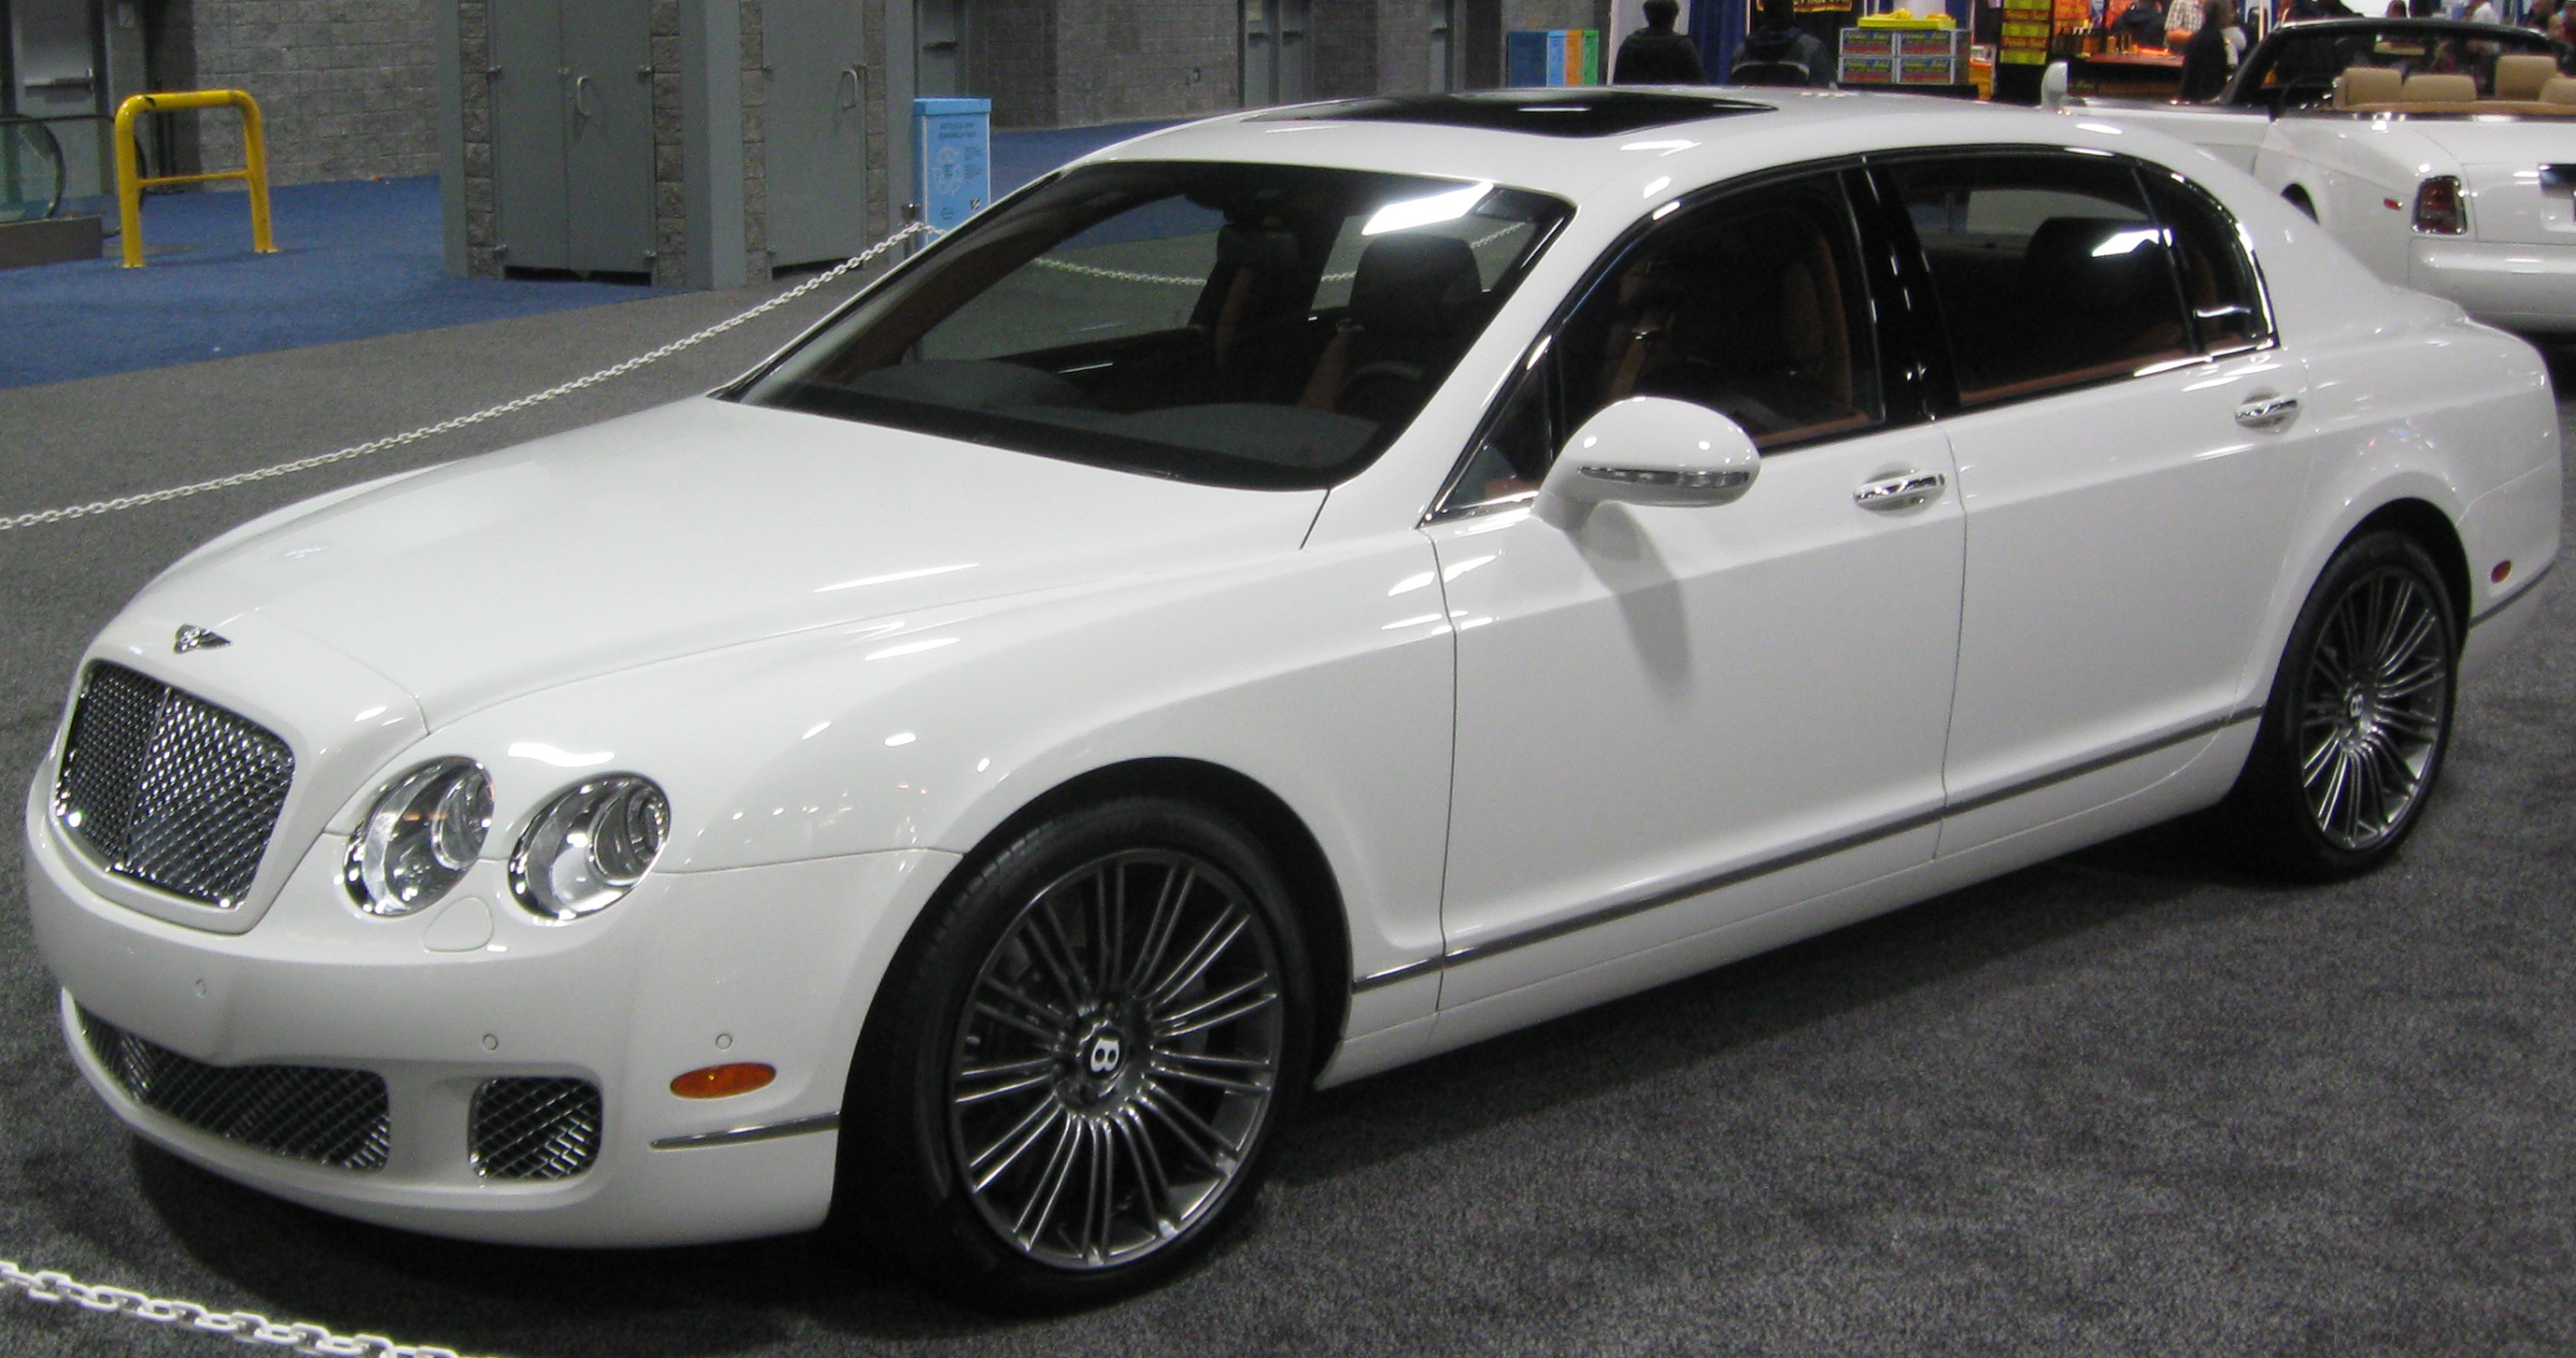 Bentley continental flying spur review and photos bentley continental flying spur white vanachro Choice Image